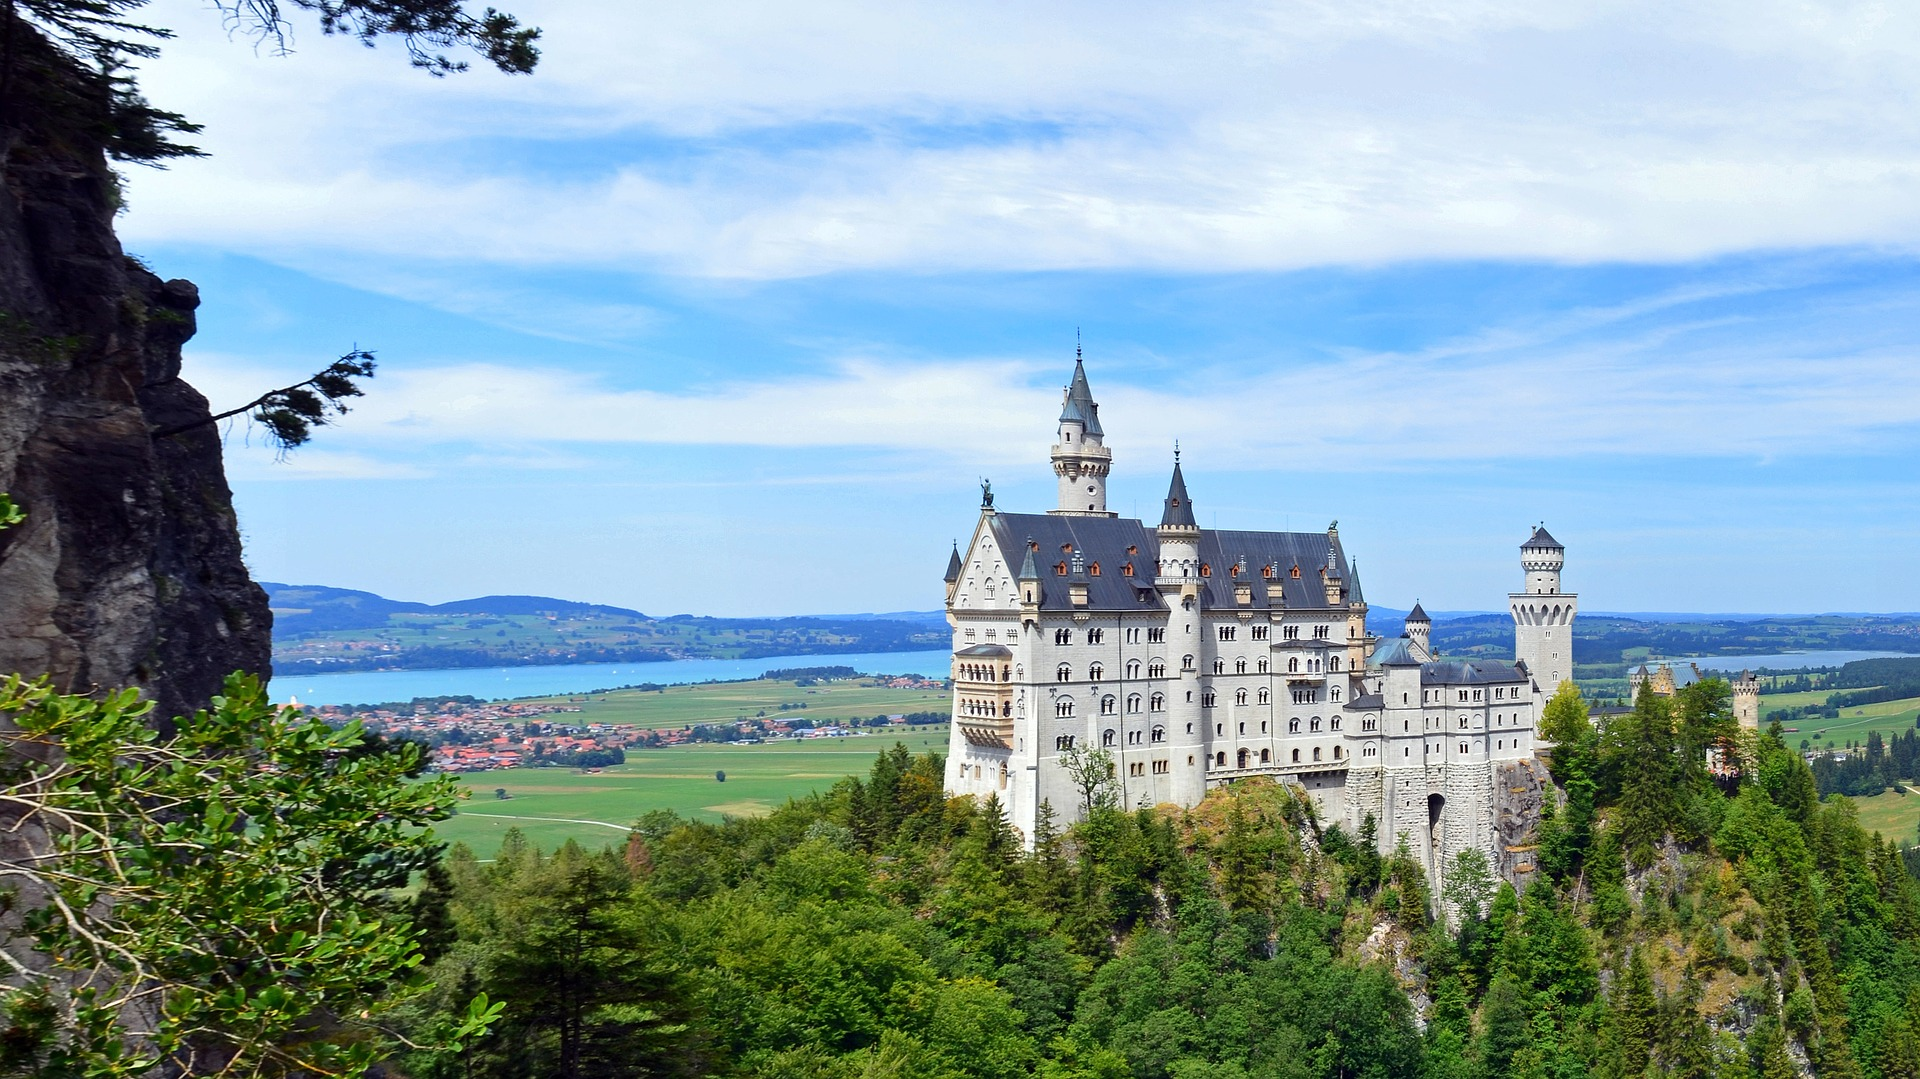 Picture of Neuschwanstein Castle